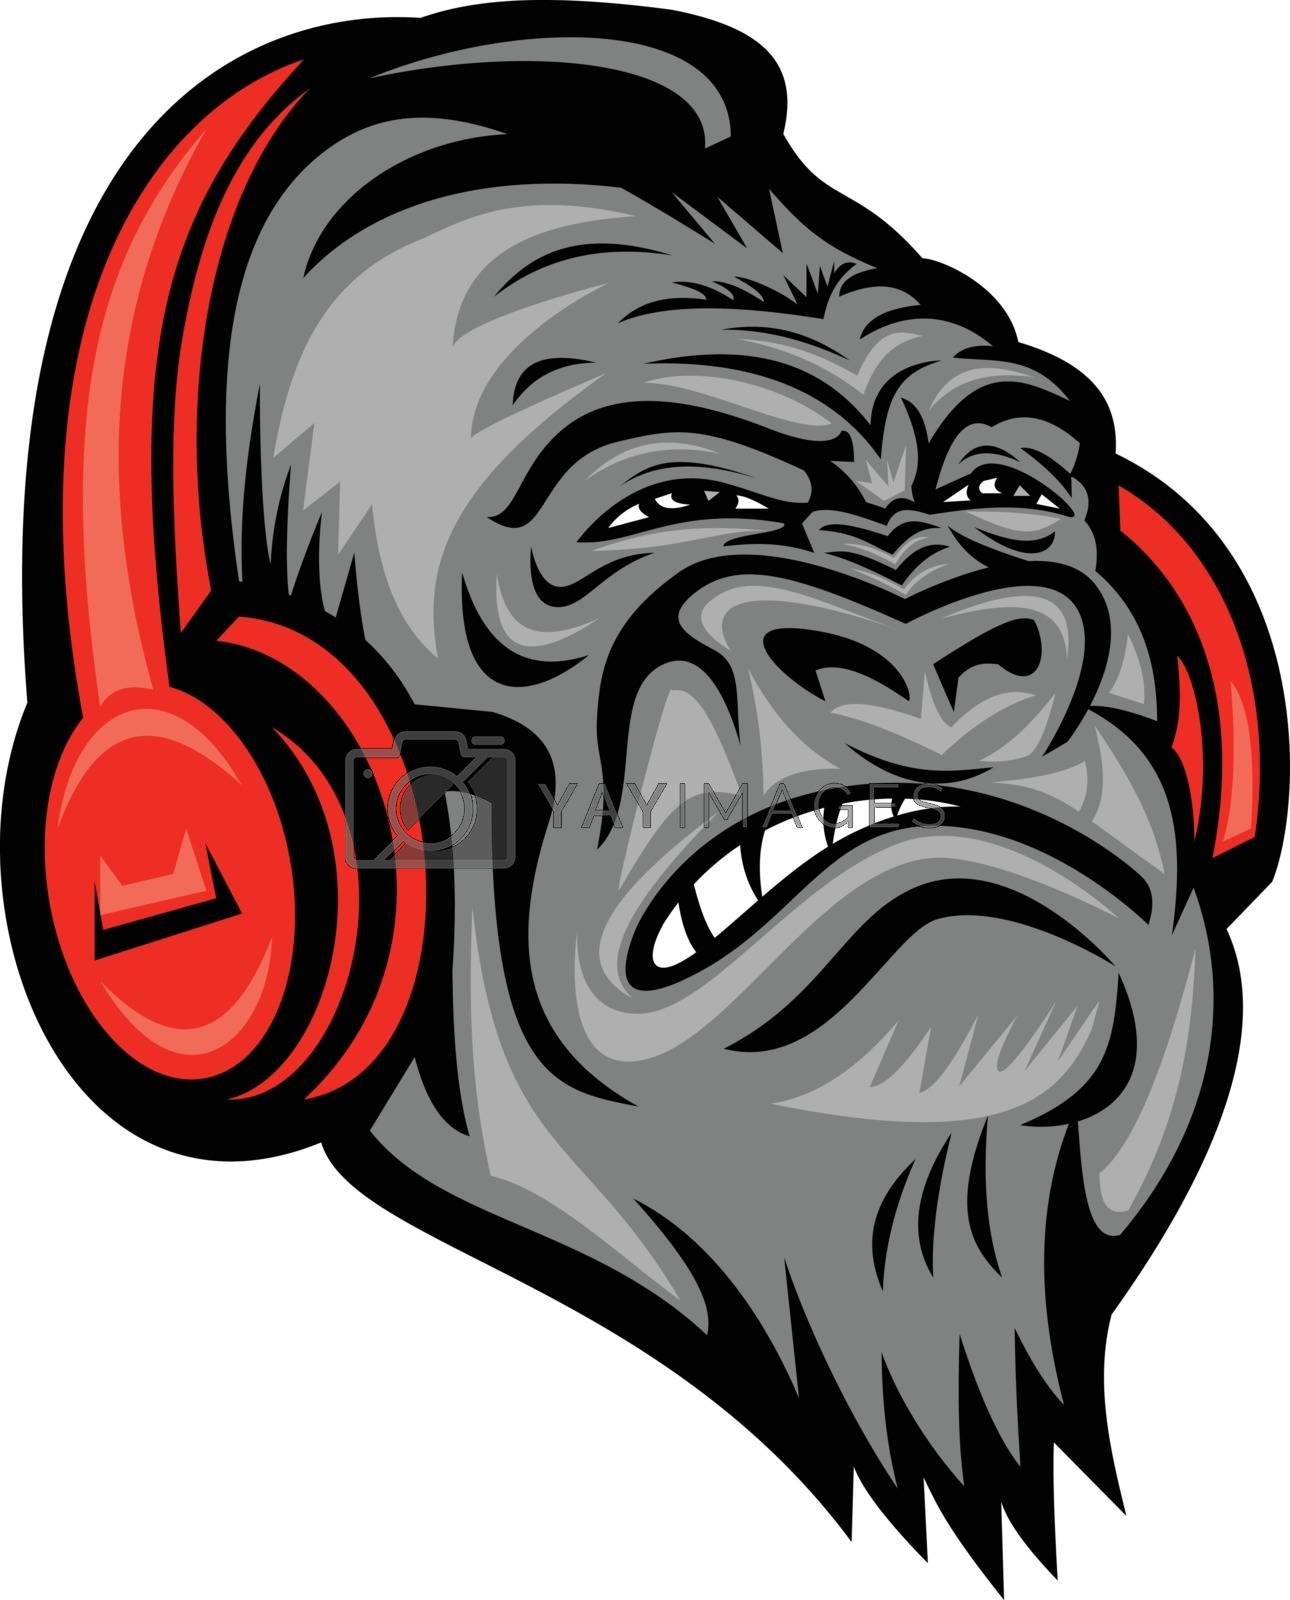 Gorilla Headphones Head Mascot Retro by patrimonio